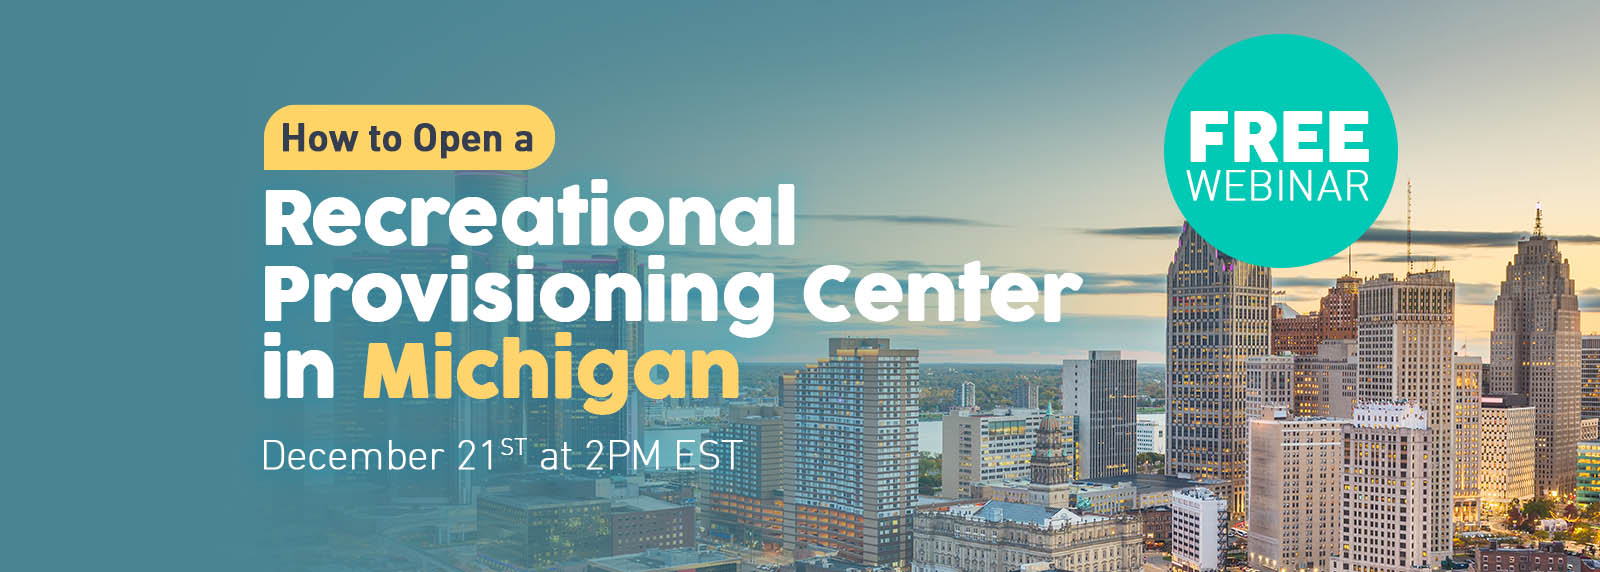 Webinar - How to Open a Recreational Provisioning Center in Michigan